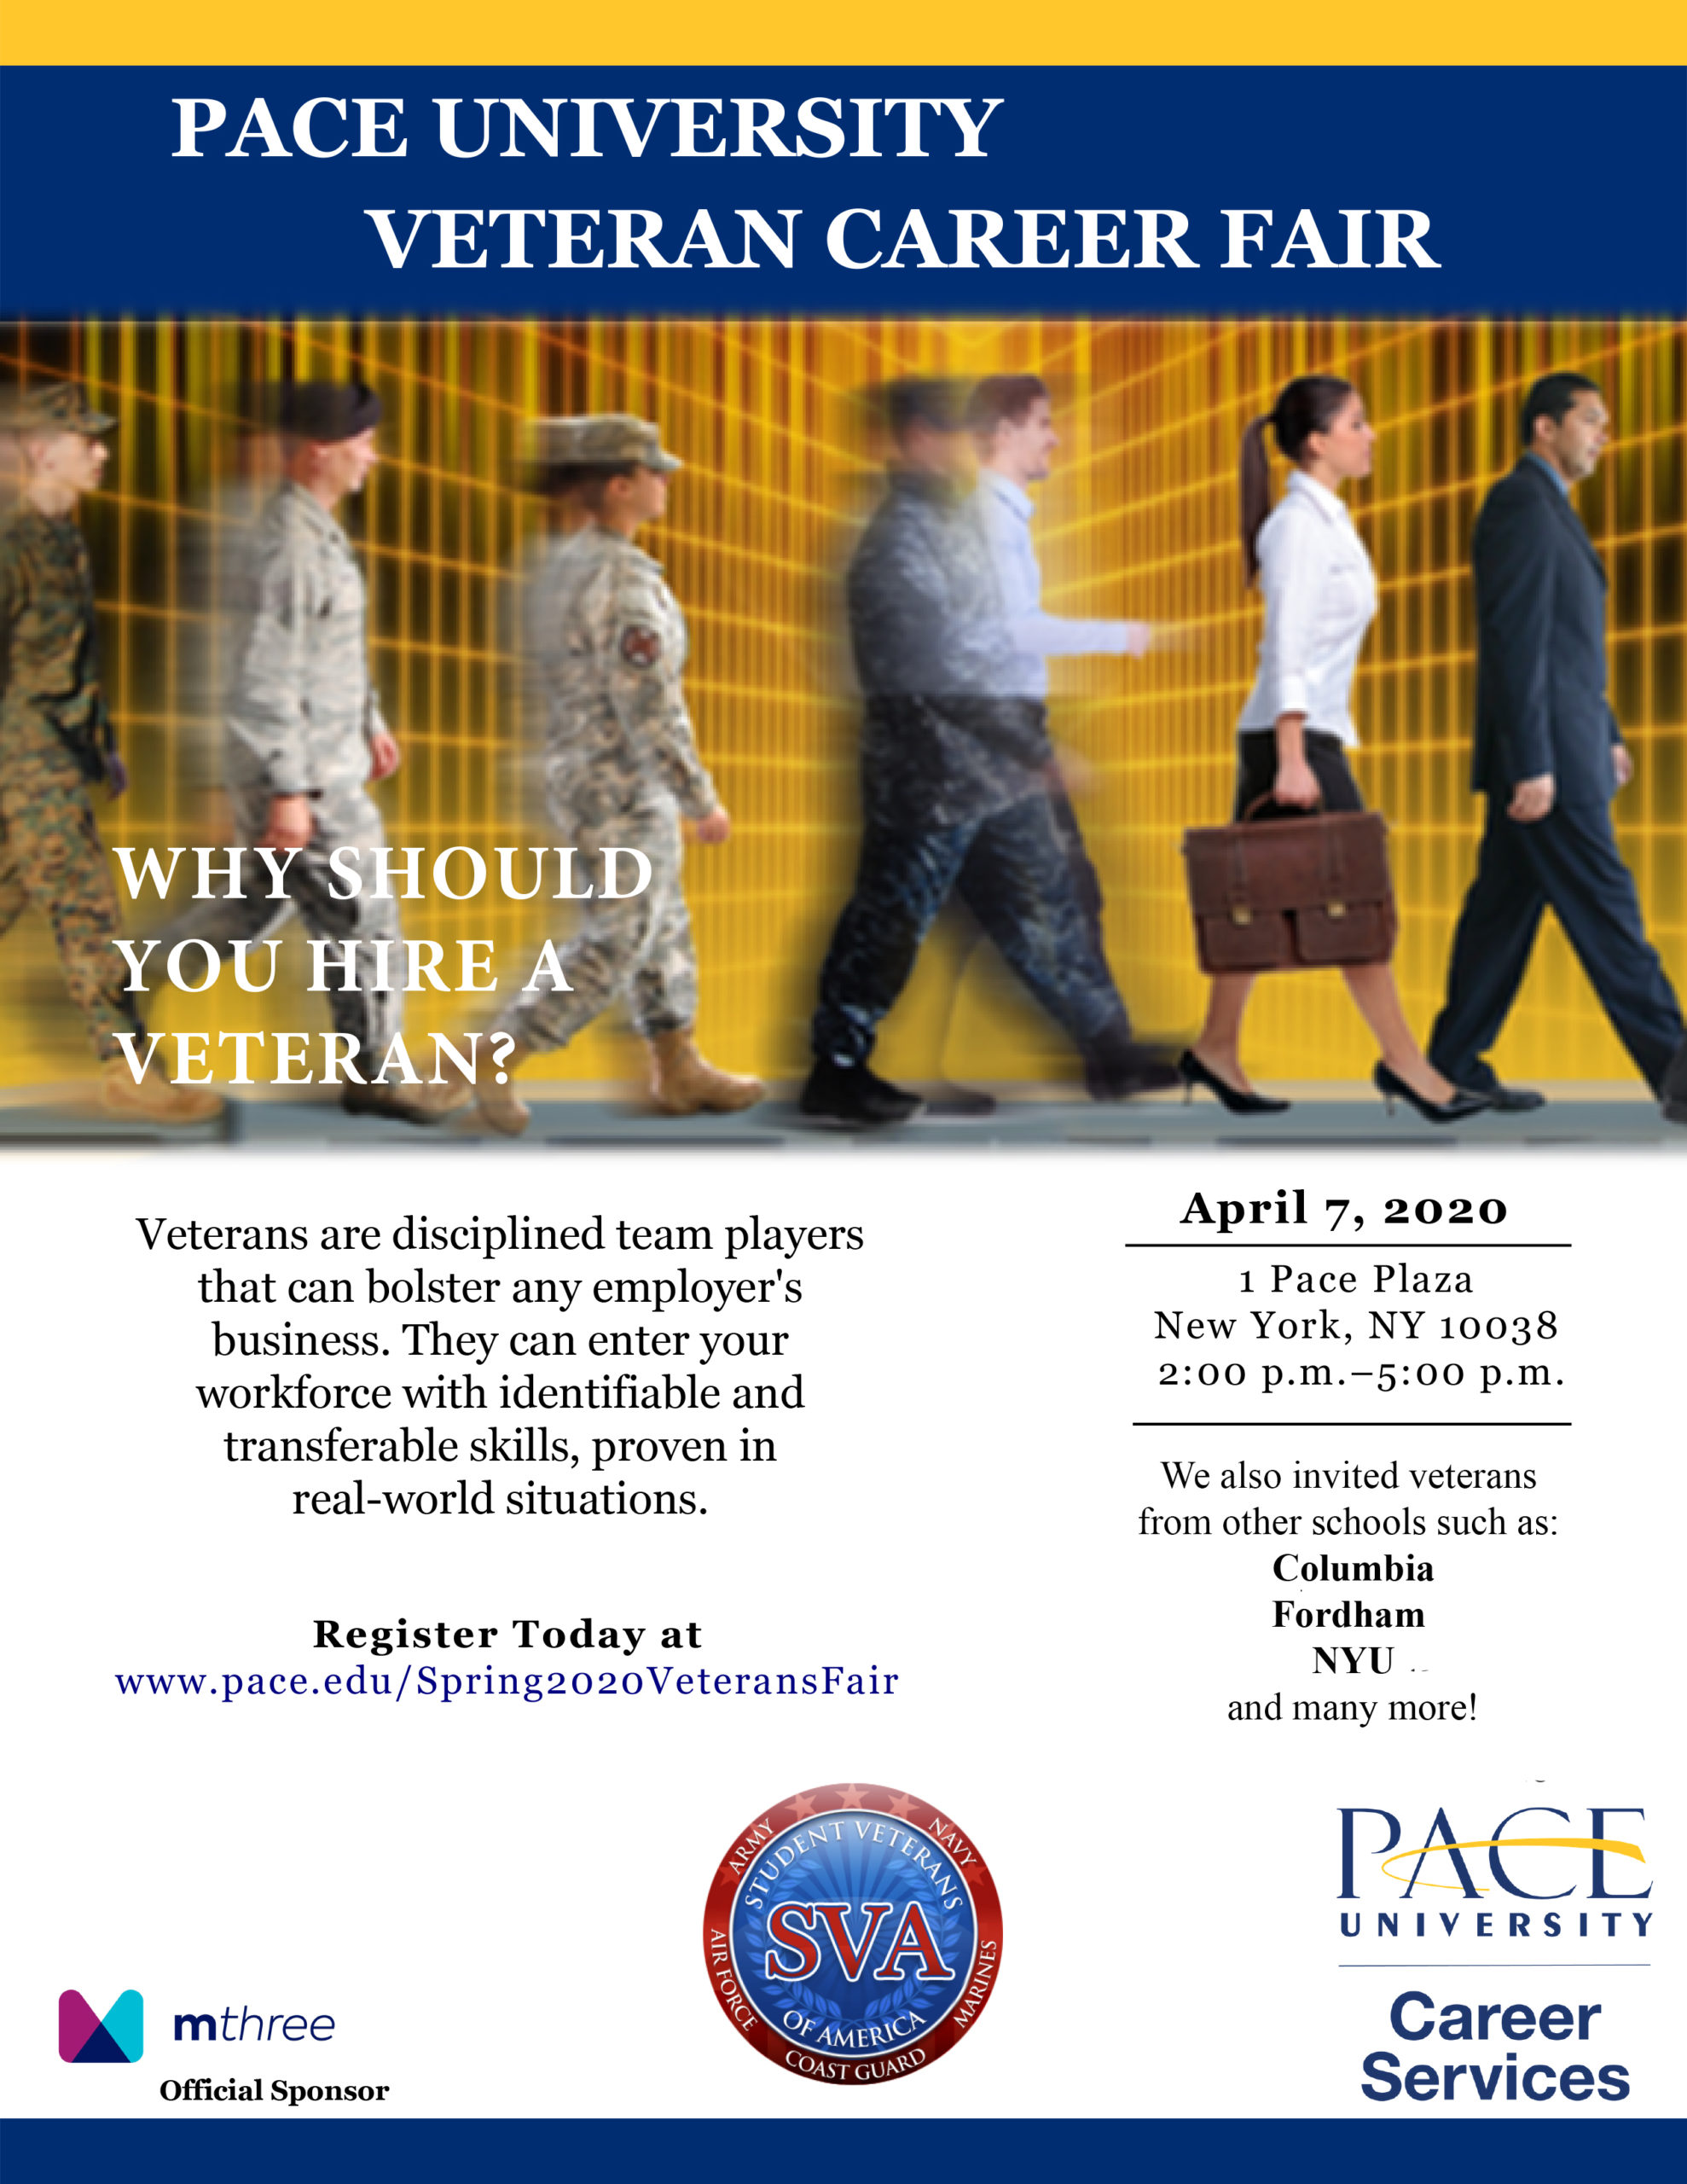 Pace University Veterans Career Fair